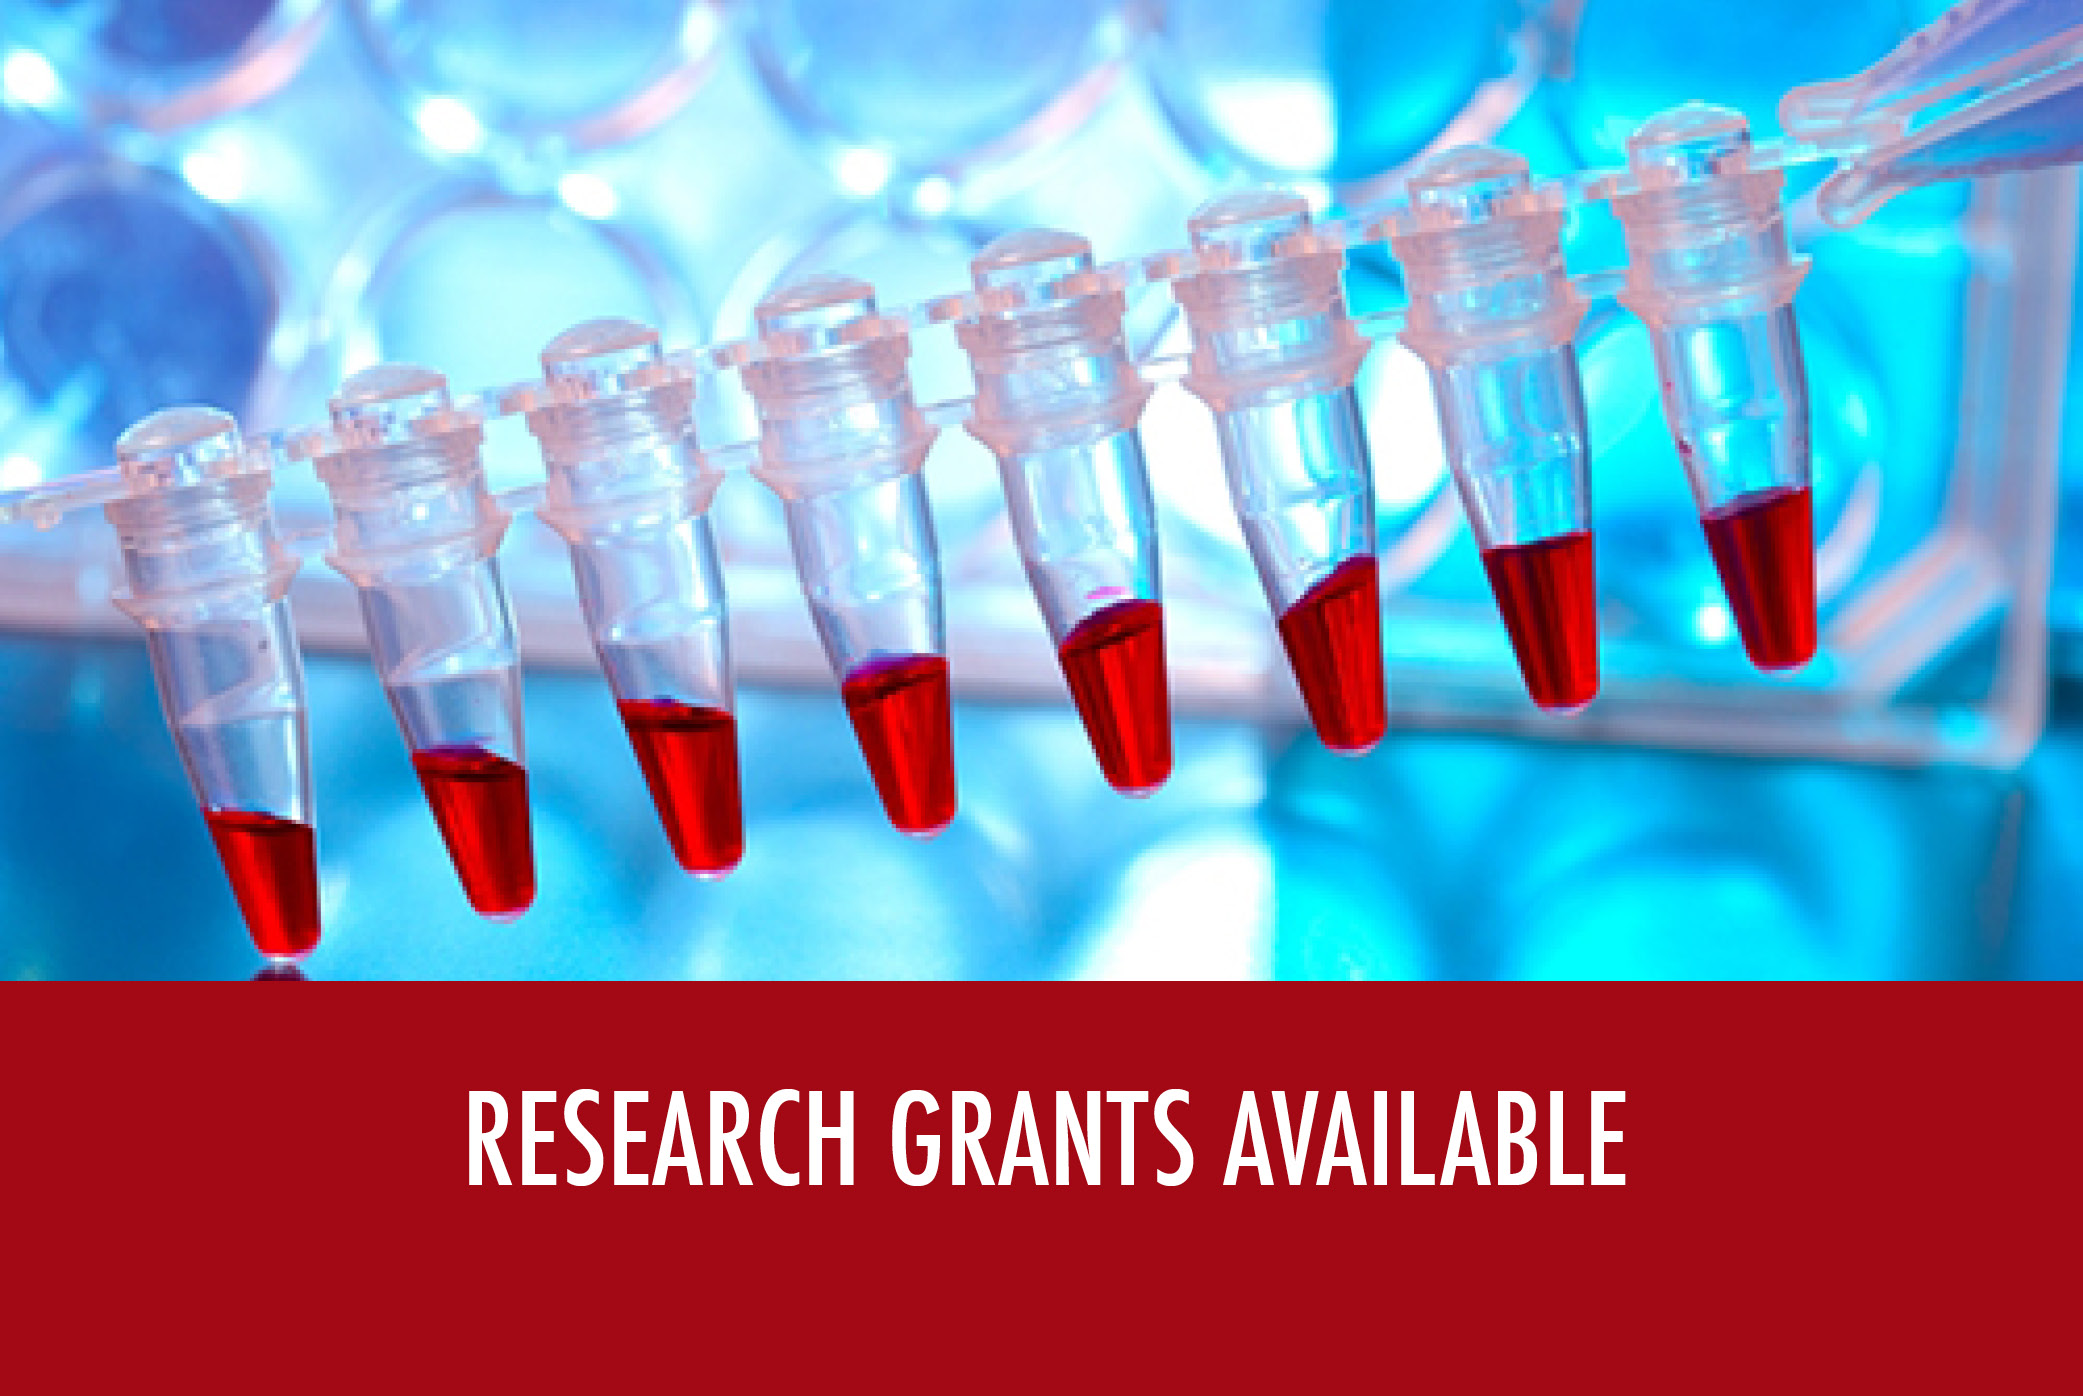 Research Grant application is now available